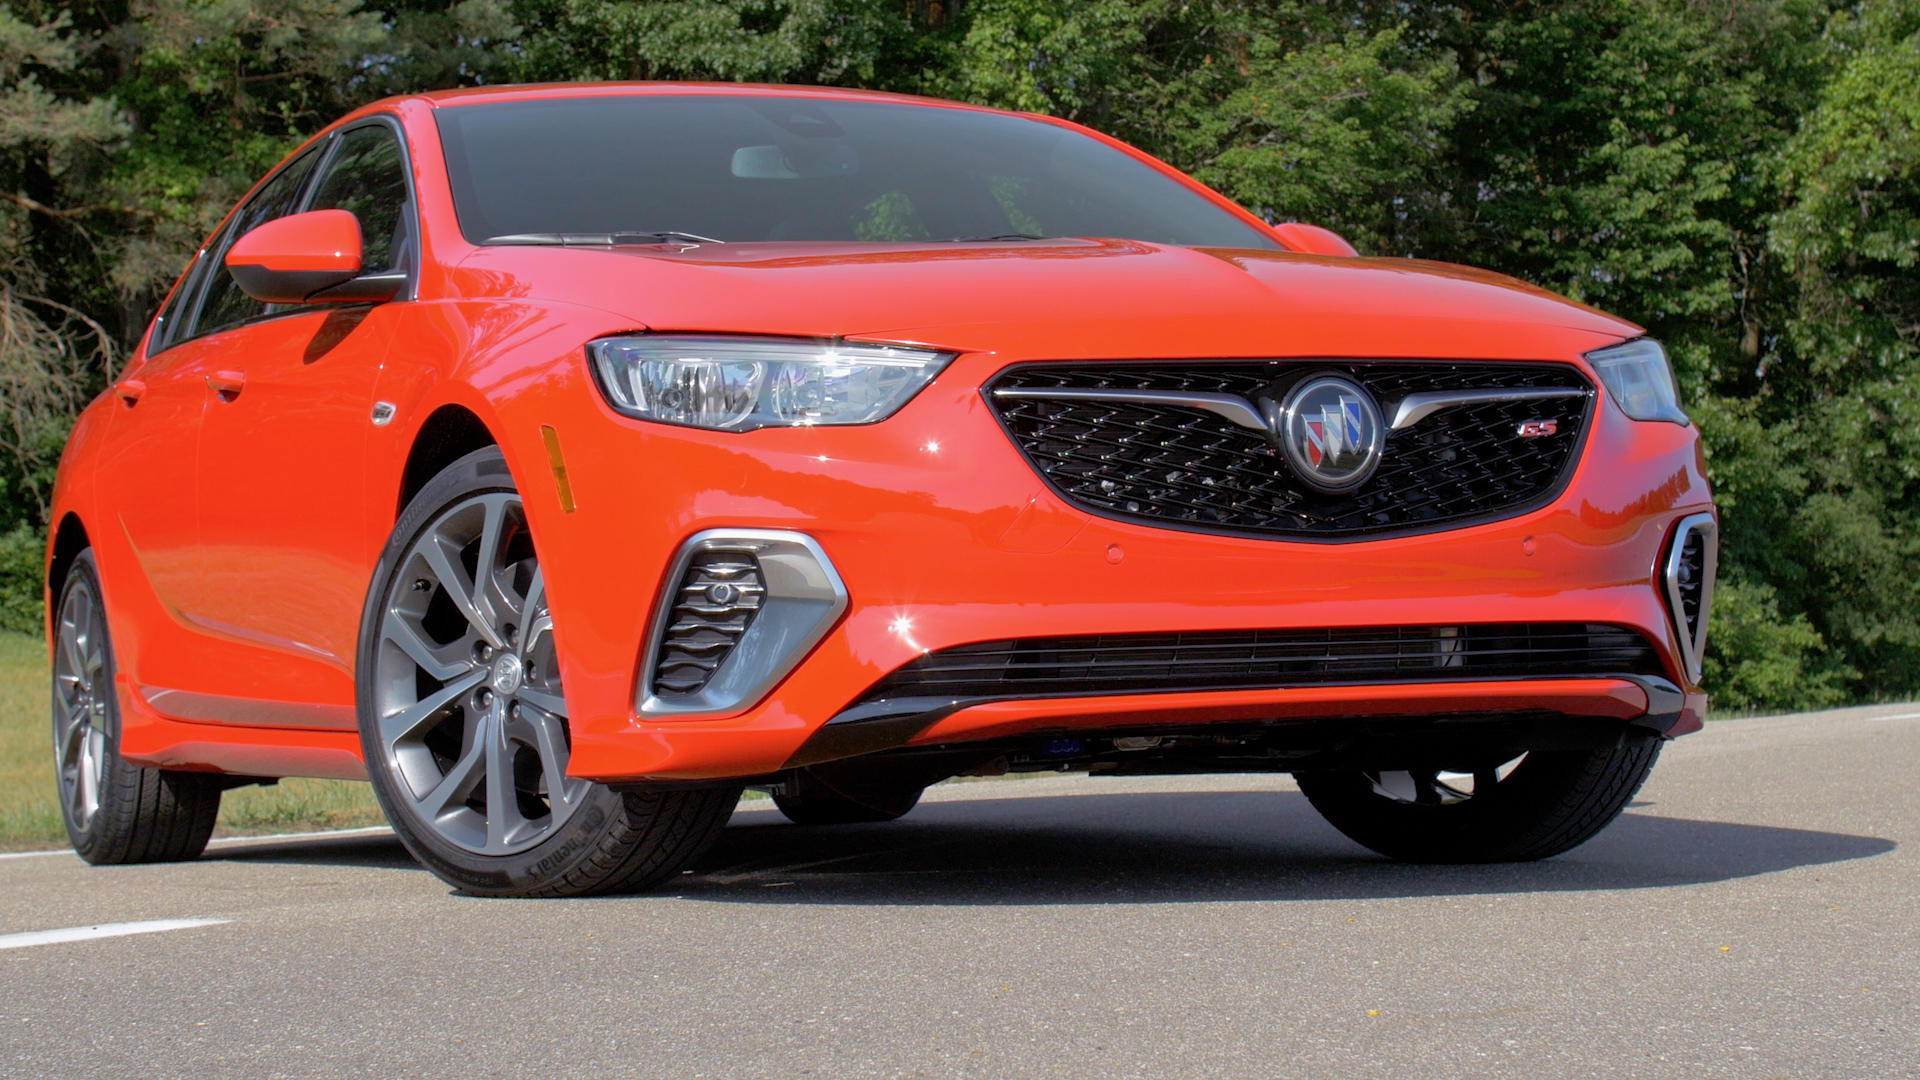 Video: 2018 Buick GS is ready to party with 310 horsepower